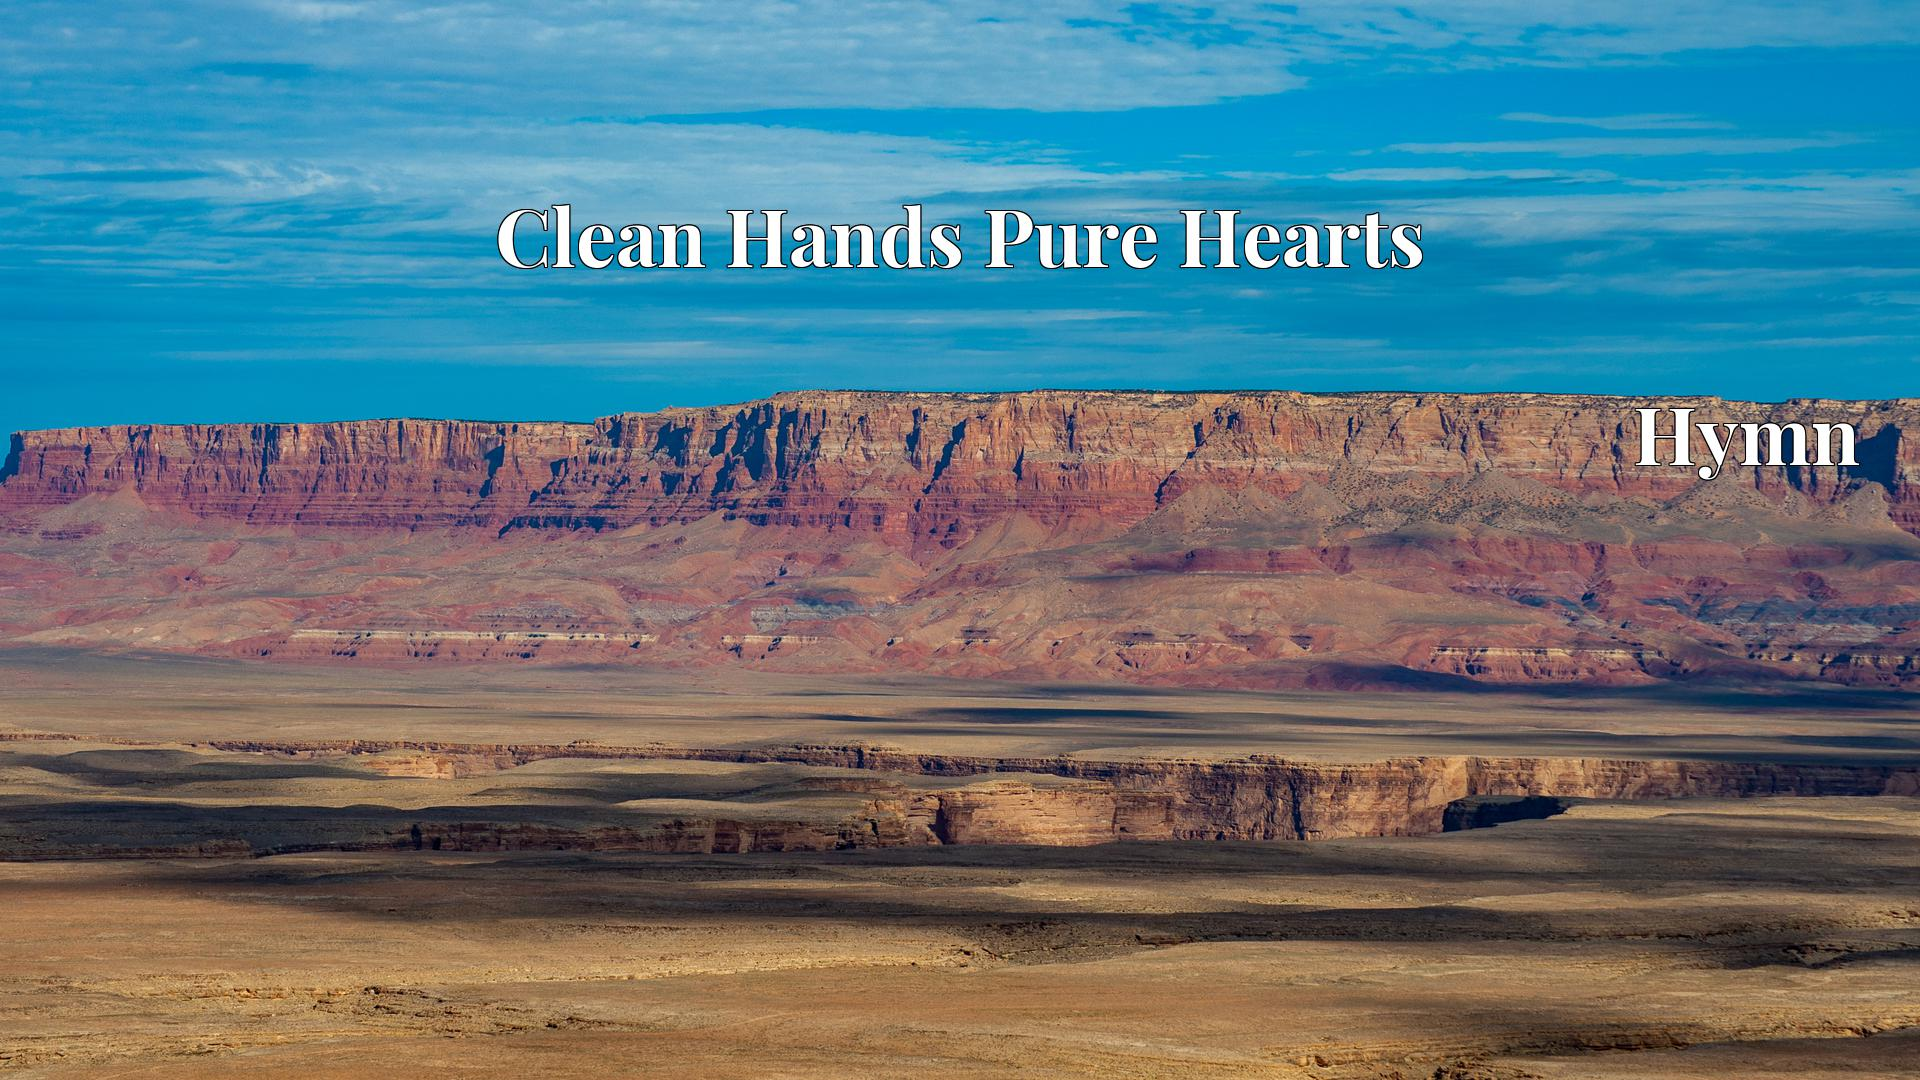 Clean Hands Pure Hearts - Hymn